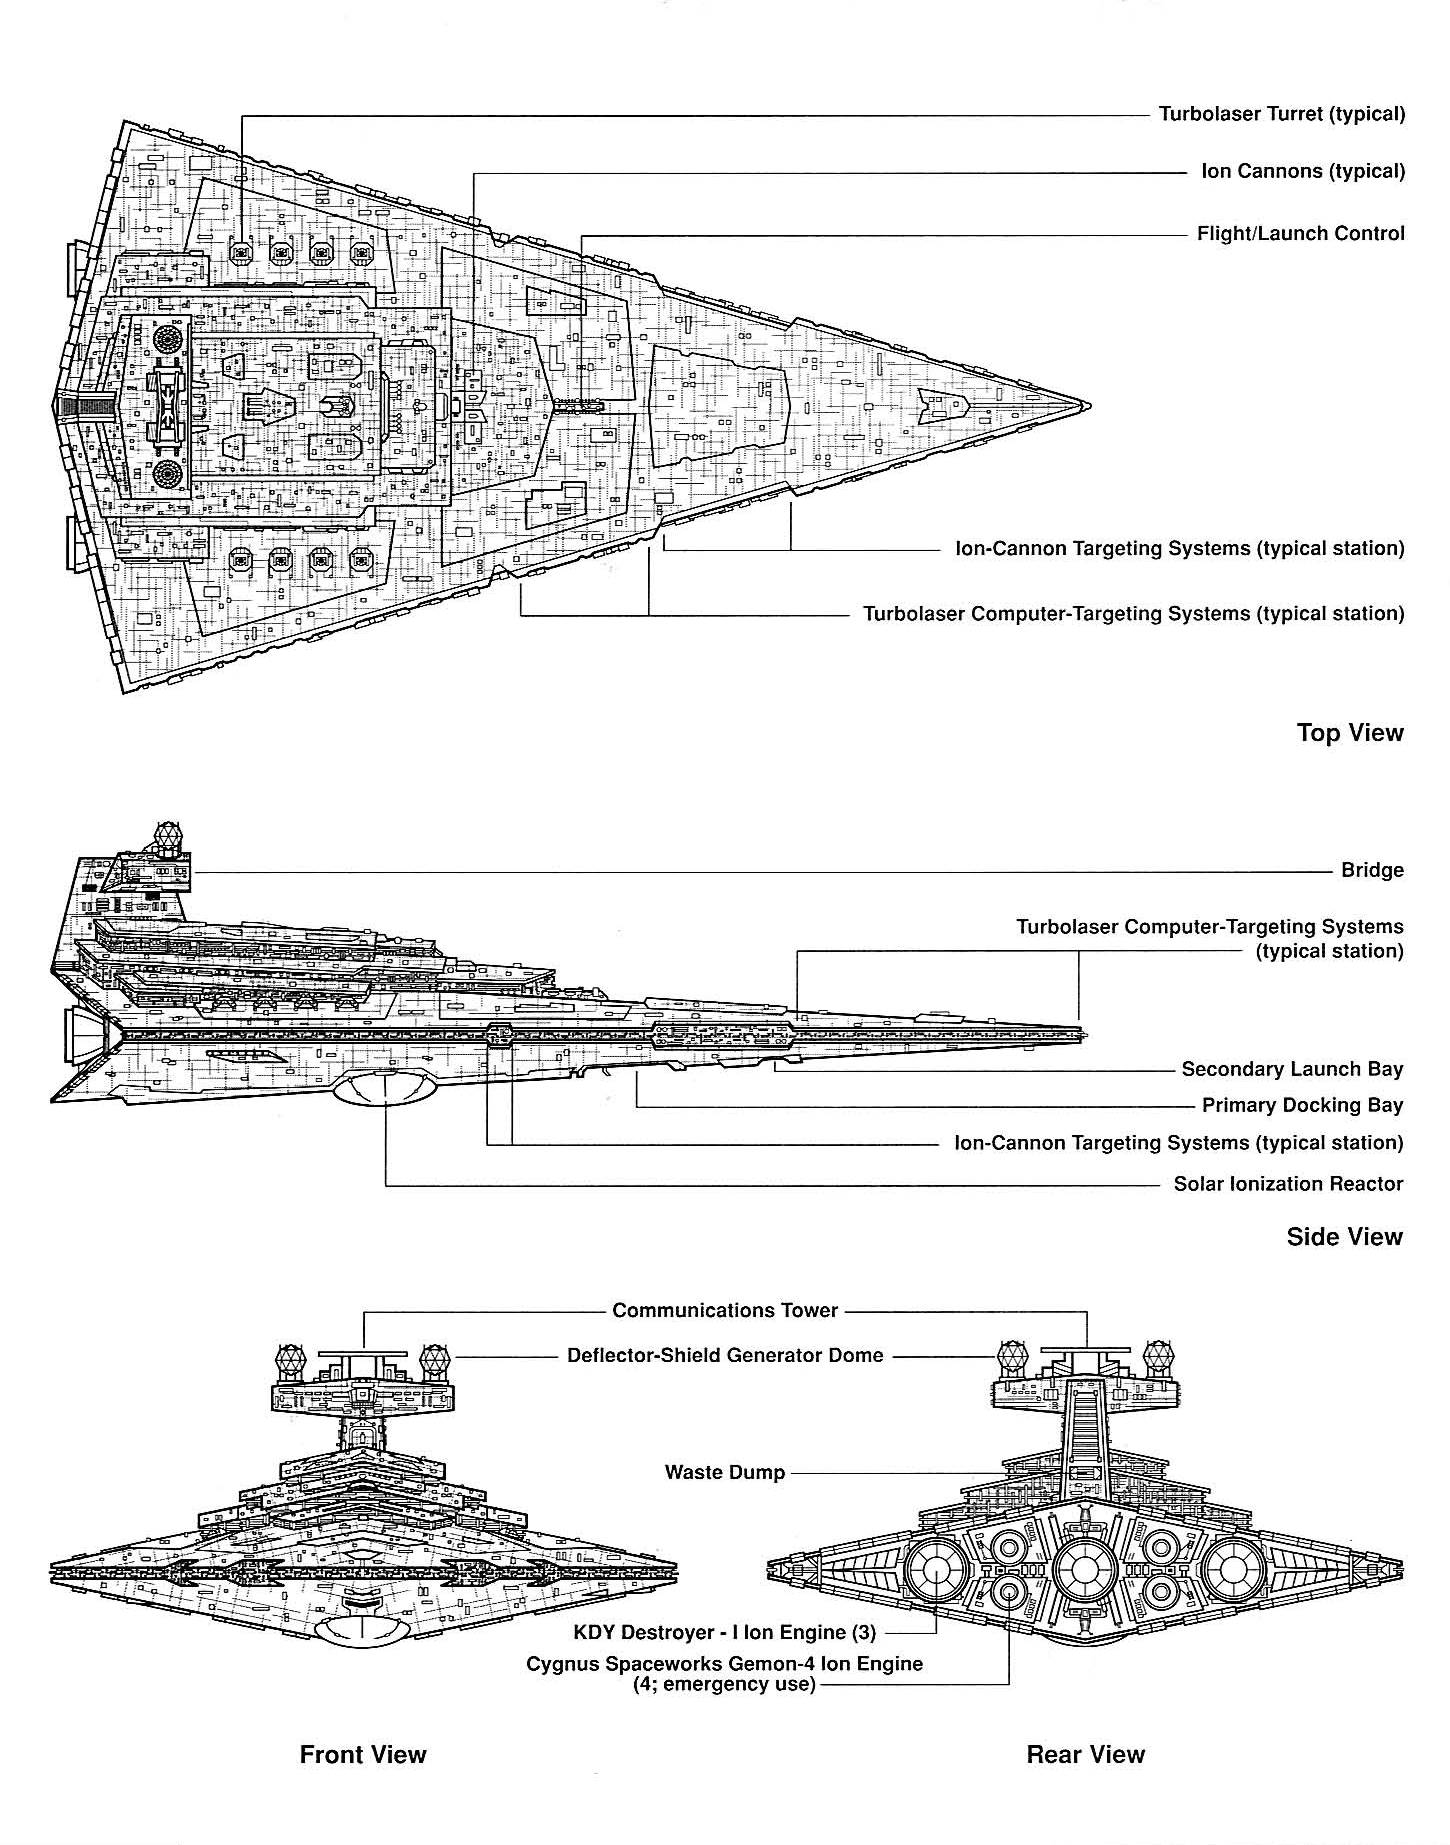 Star Destroyer Schematic Cannon Location Great Installation Of Free Download Wiring Diagram Image Isd Egvv Wookieepedia Fandom Powered By Wikia Rh Starwars Com